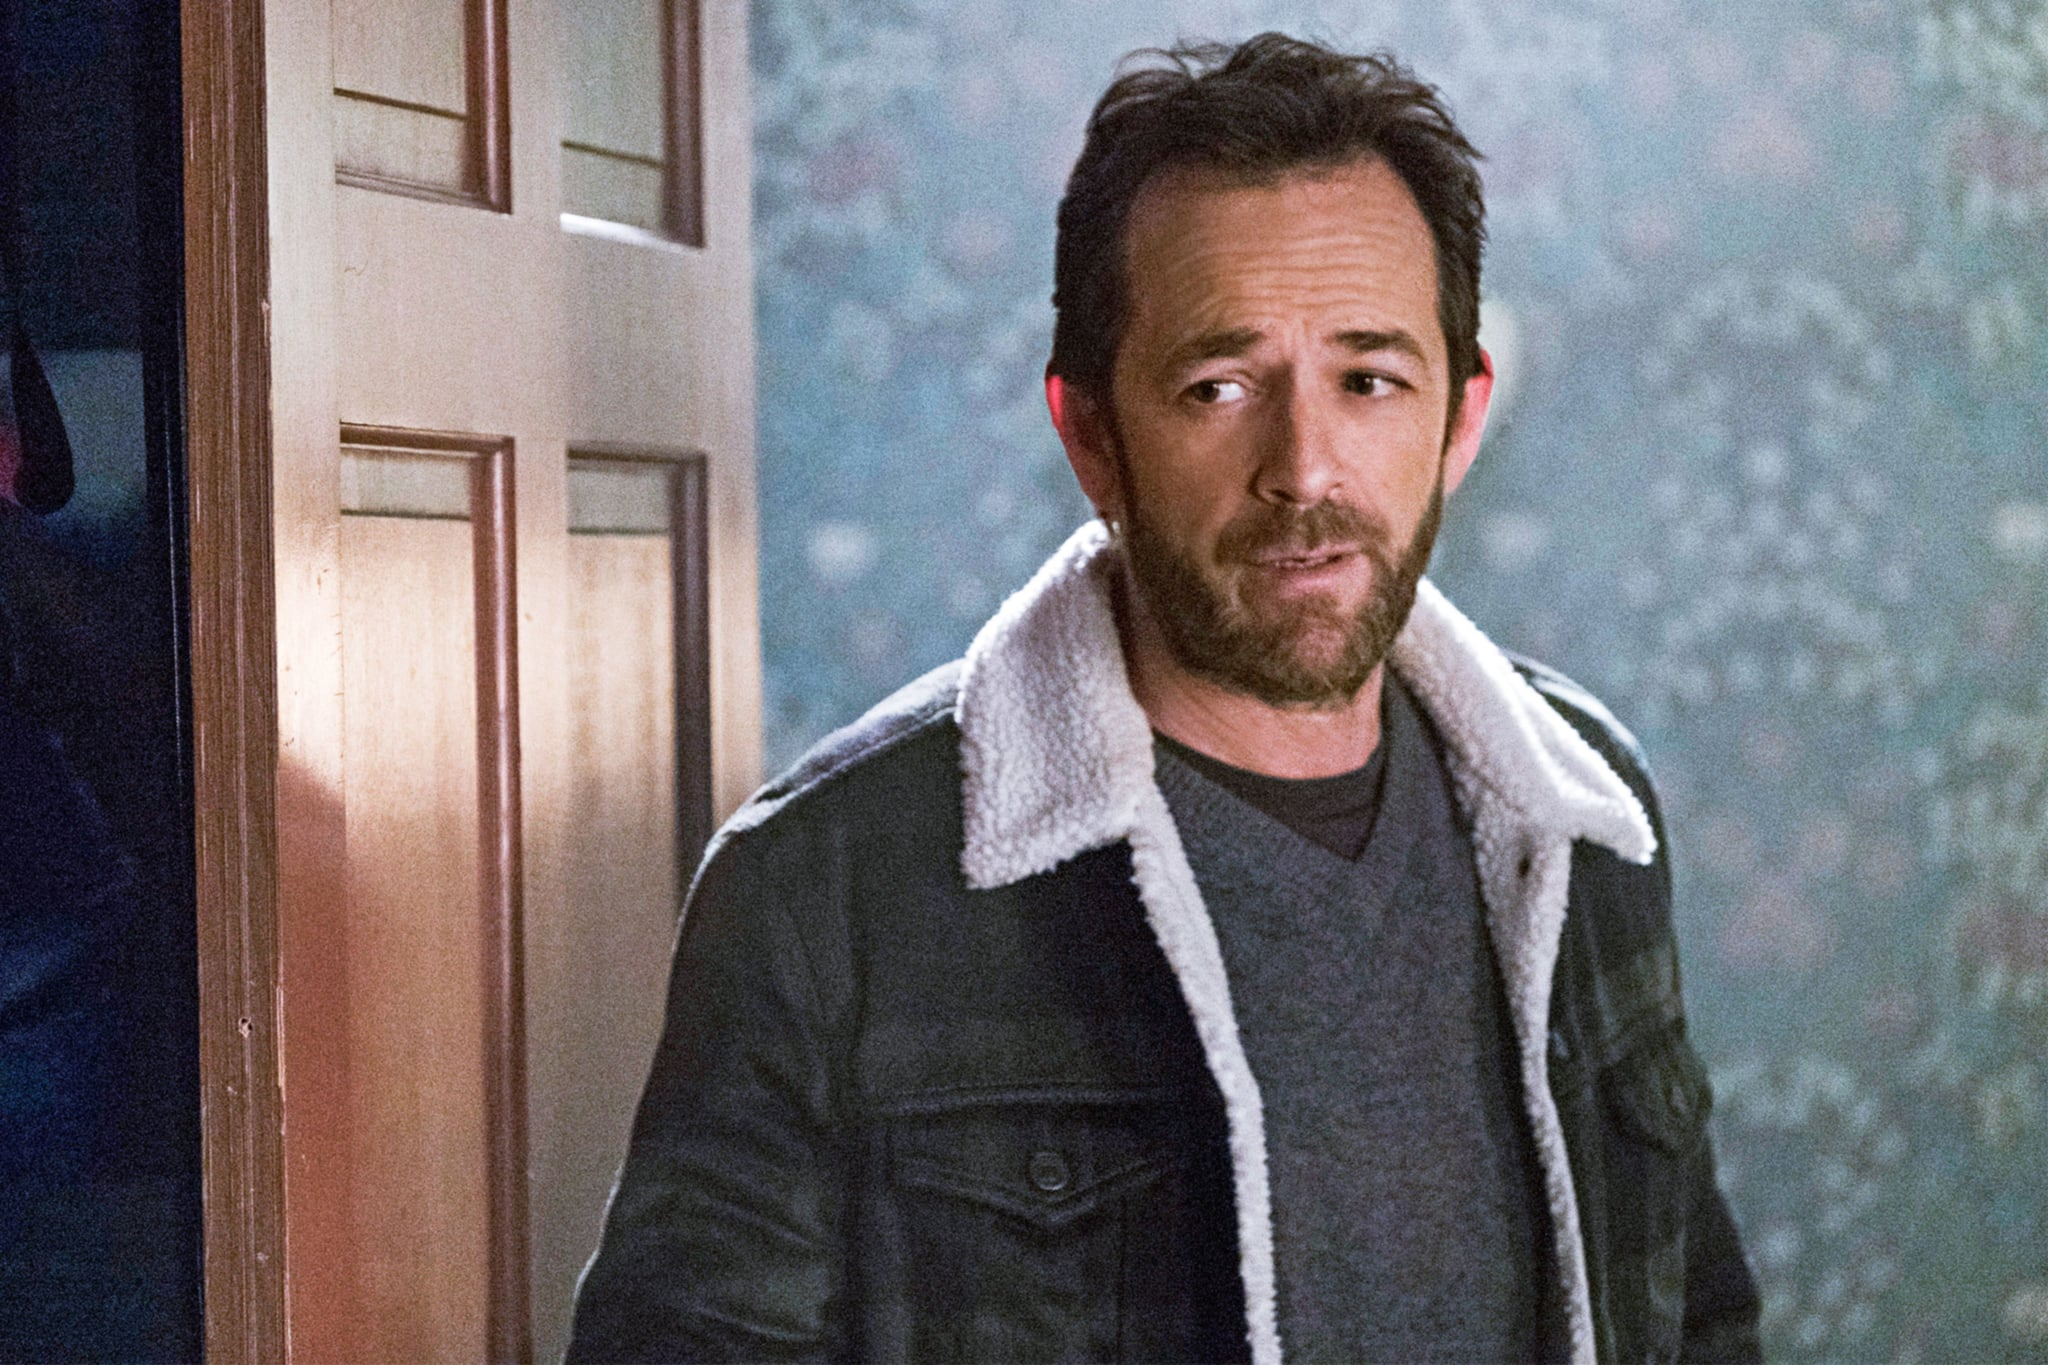 RIVERDALE, Luke Perry in 'Chapter Ten: The Lost Weekend', (Season 1, Episode 110, aired April 13, 2017), ph: Cate Cameron / The CW / Courtesy Everett Collection